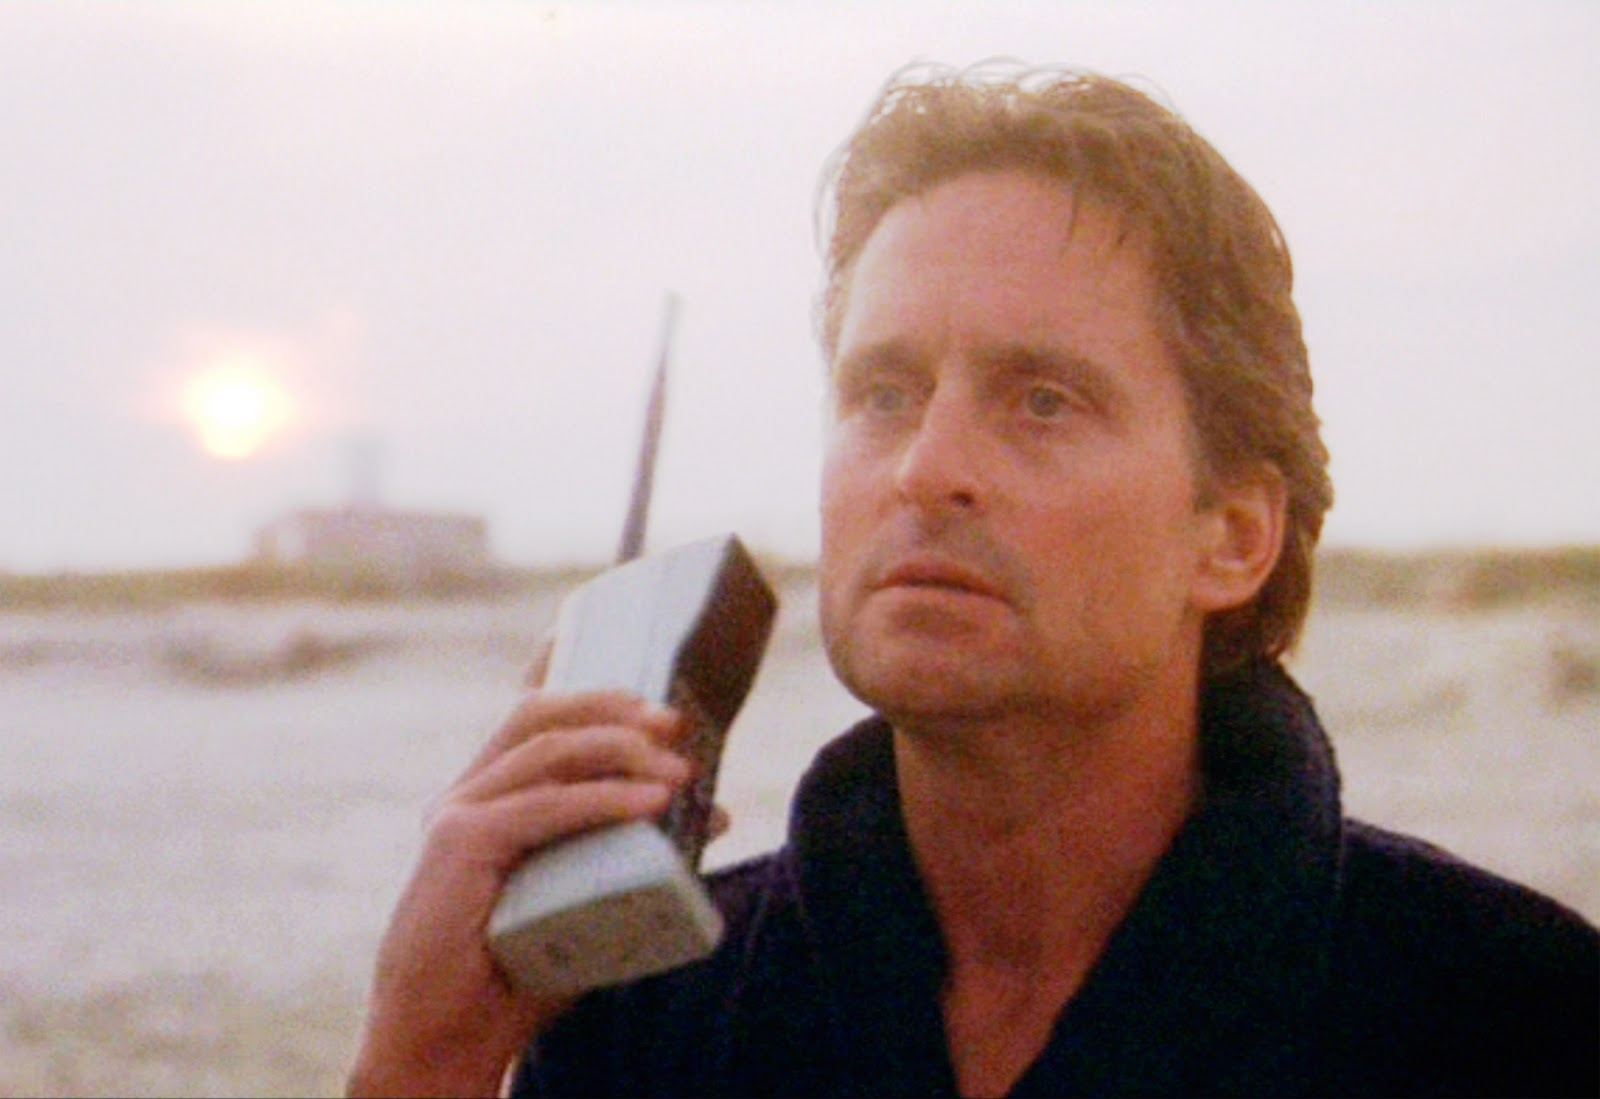 Michael Douglas' ridiculously big phone in Wall Street